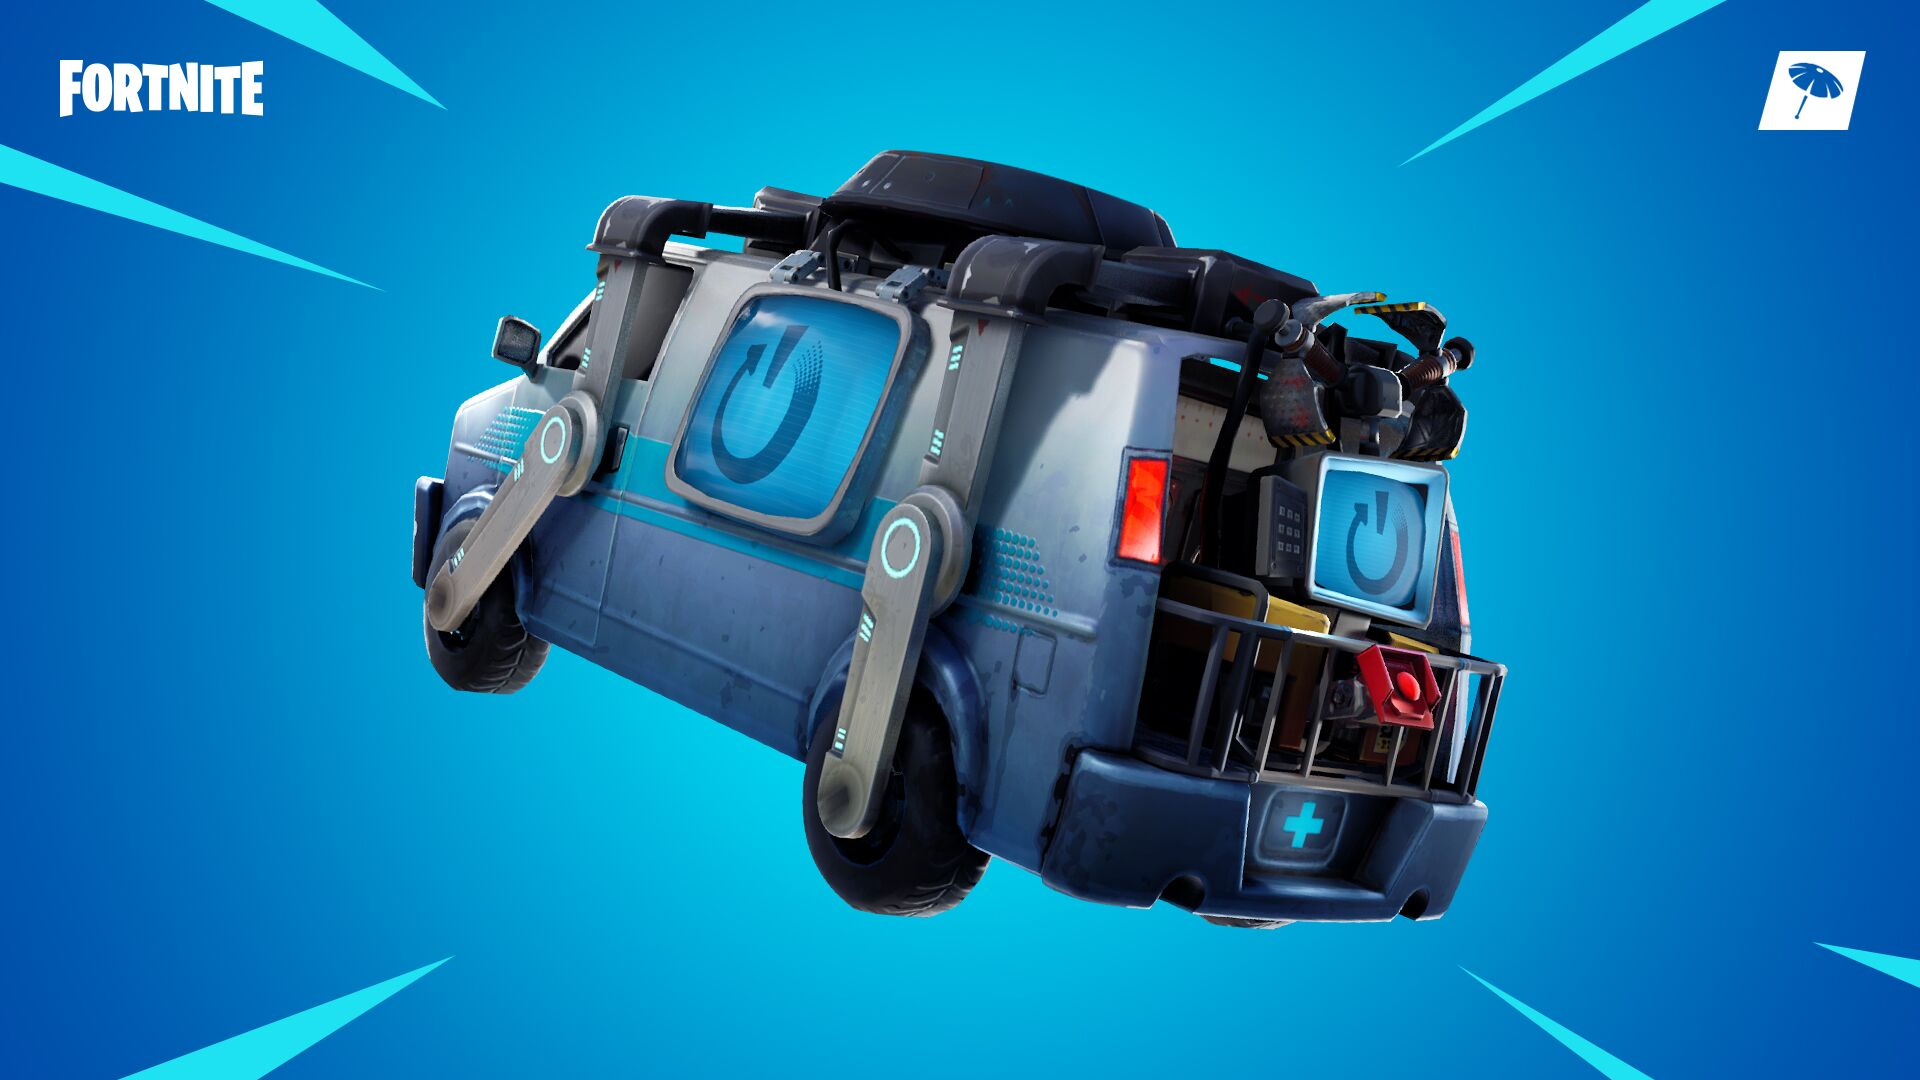 Reboot van added to Fortnite, similar to Apex Legends' respawn system